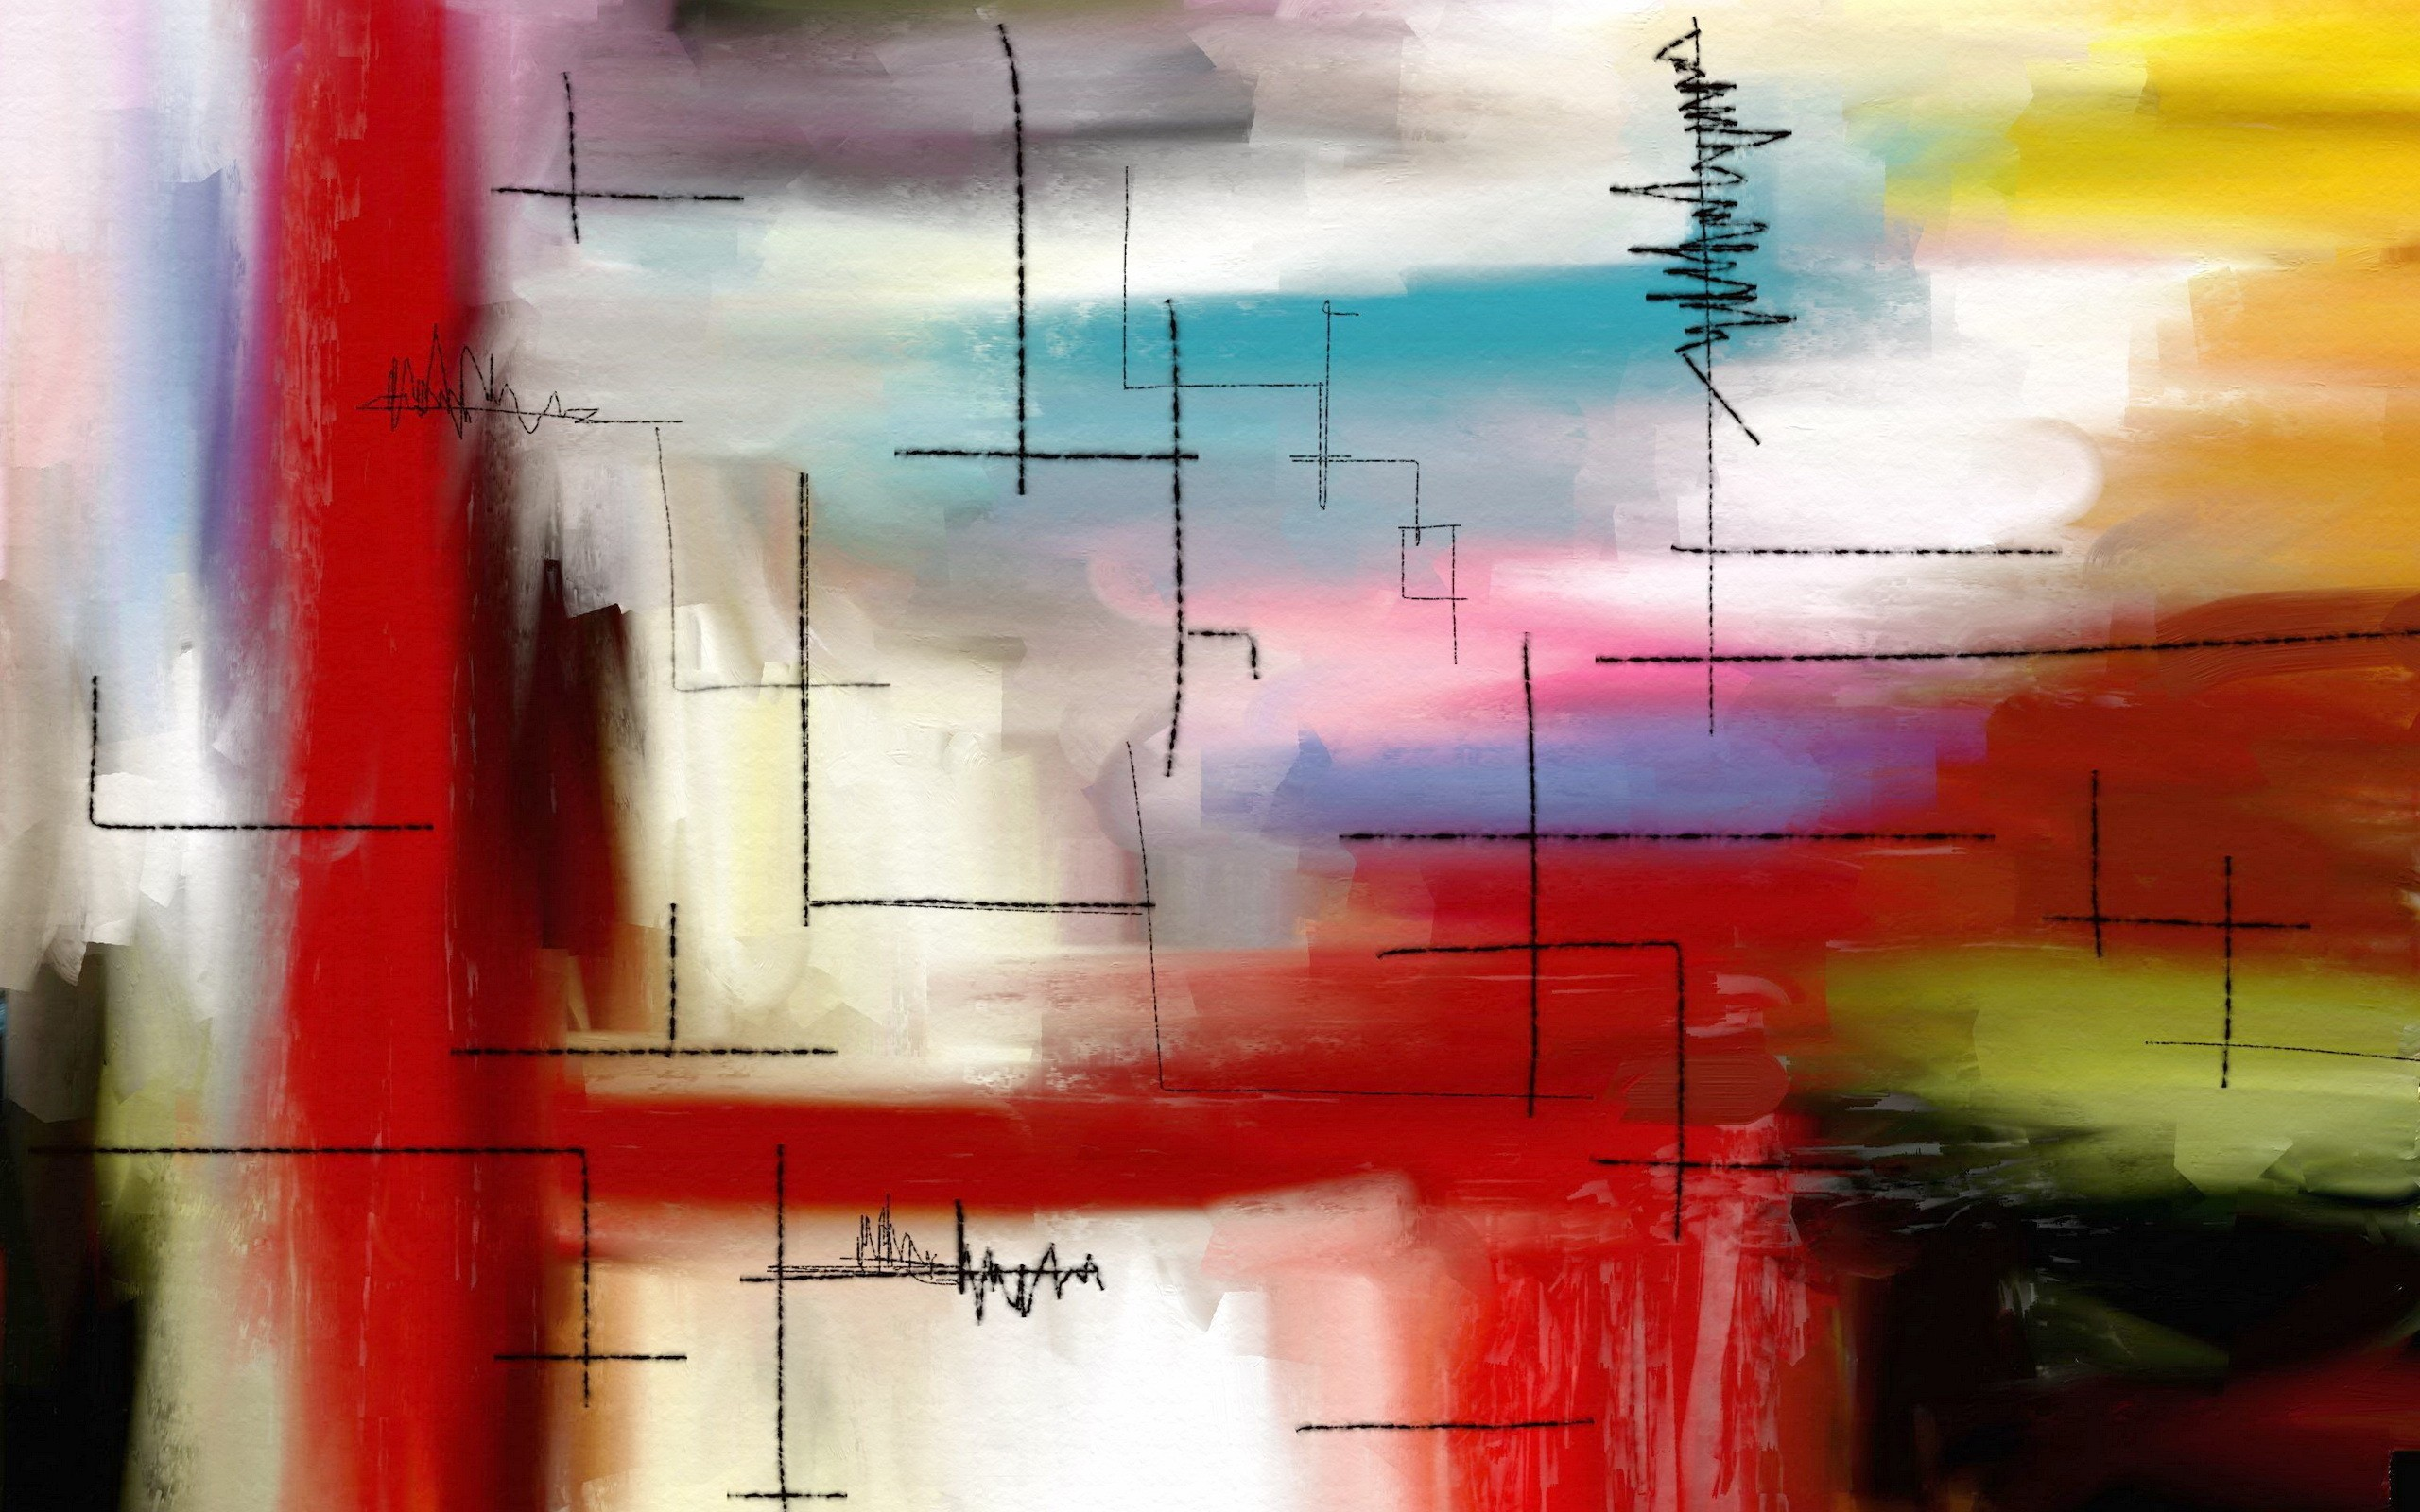 Modern Art Background For Desktop Wallpaper 2560 x 1600 px 1.2 MB mid  century contemporary abstract